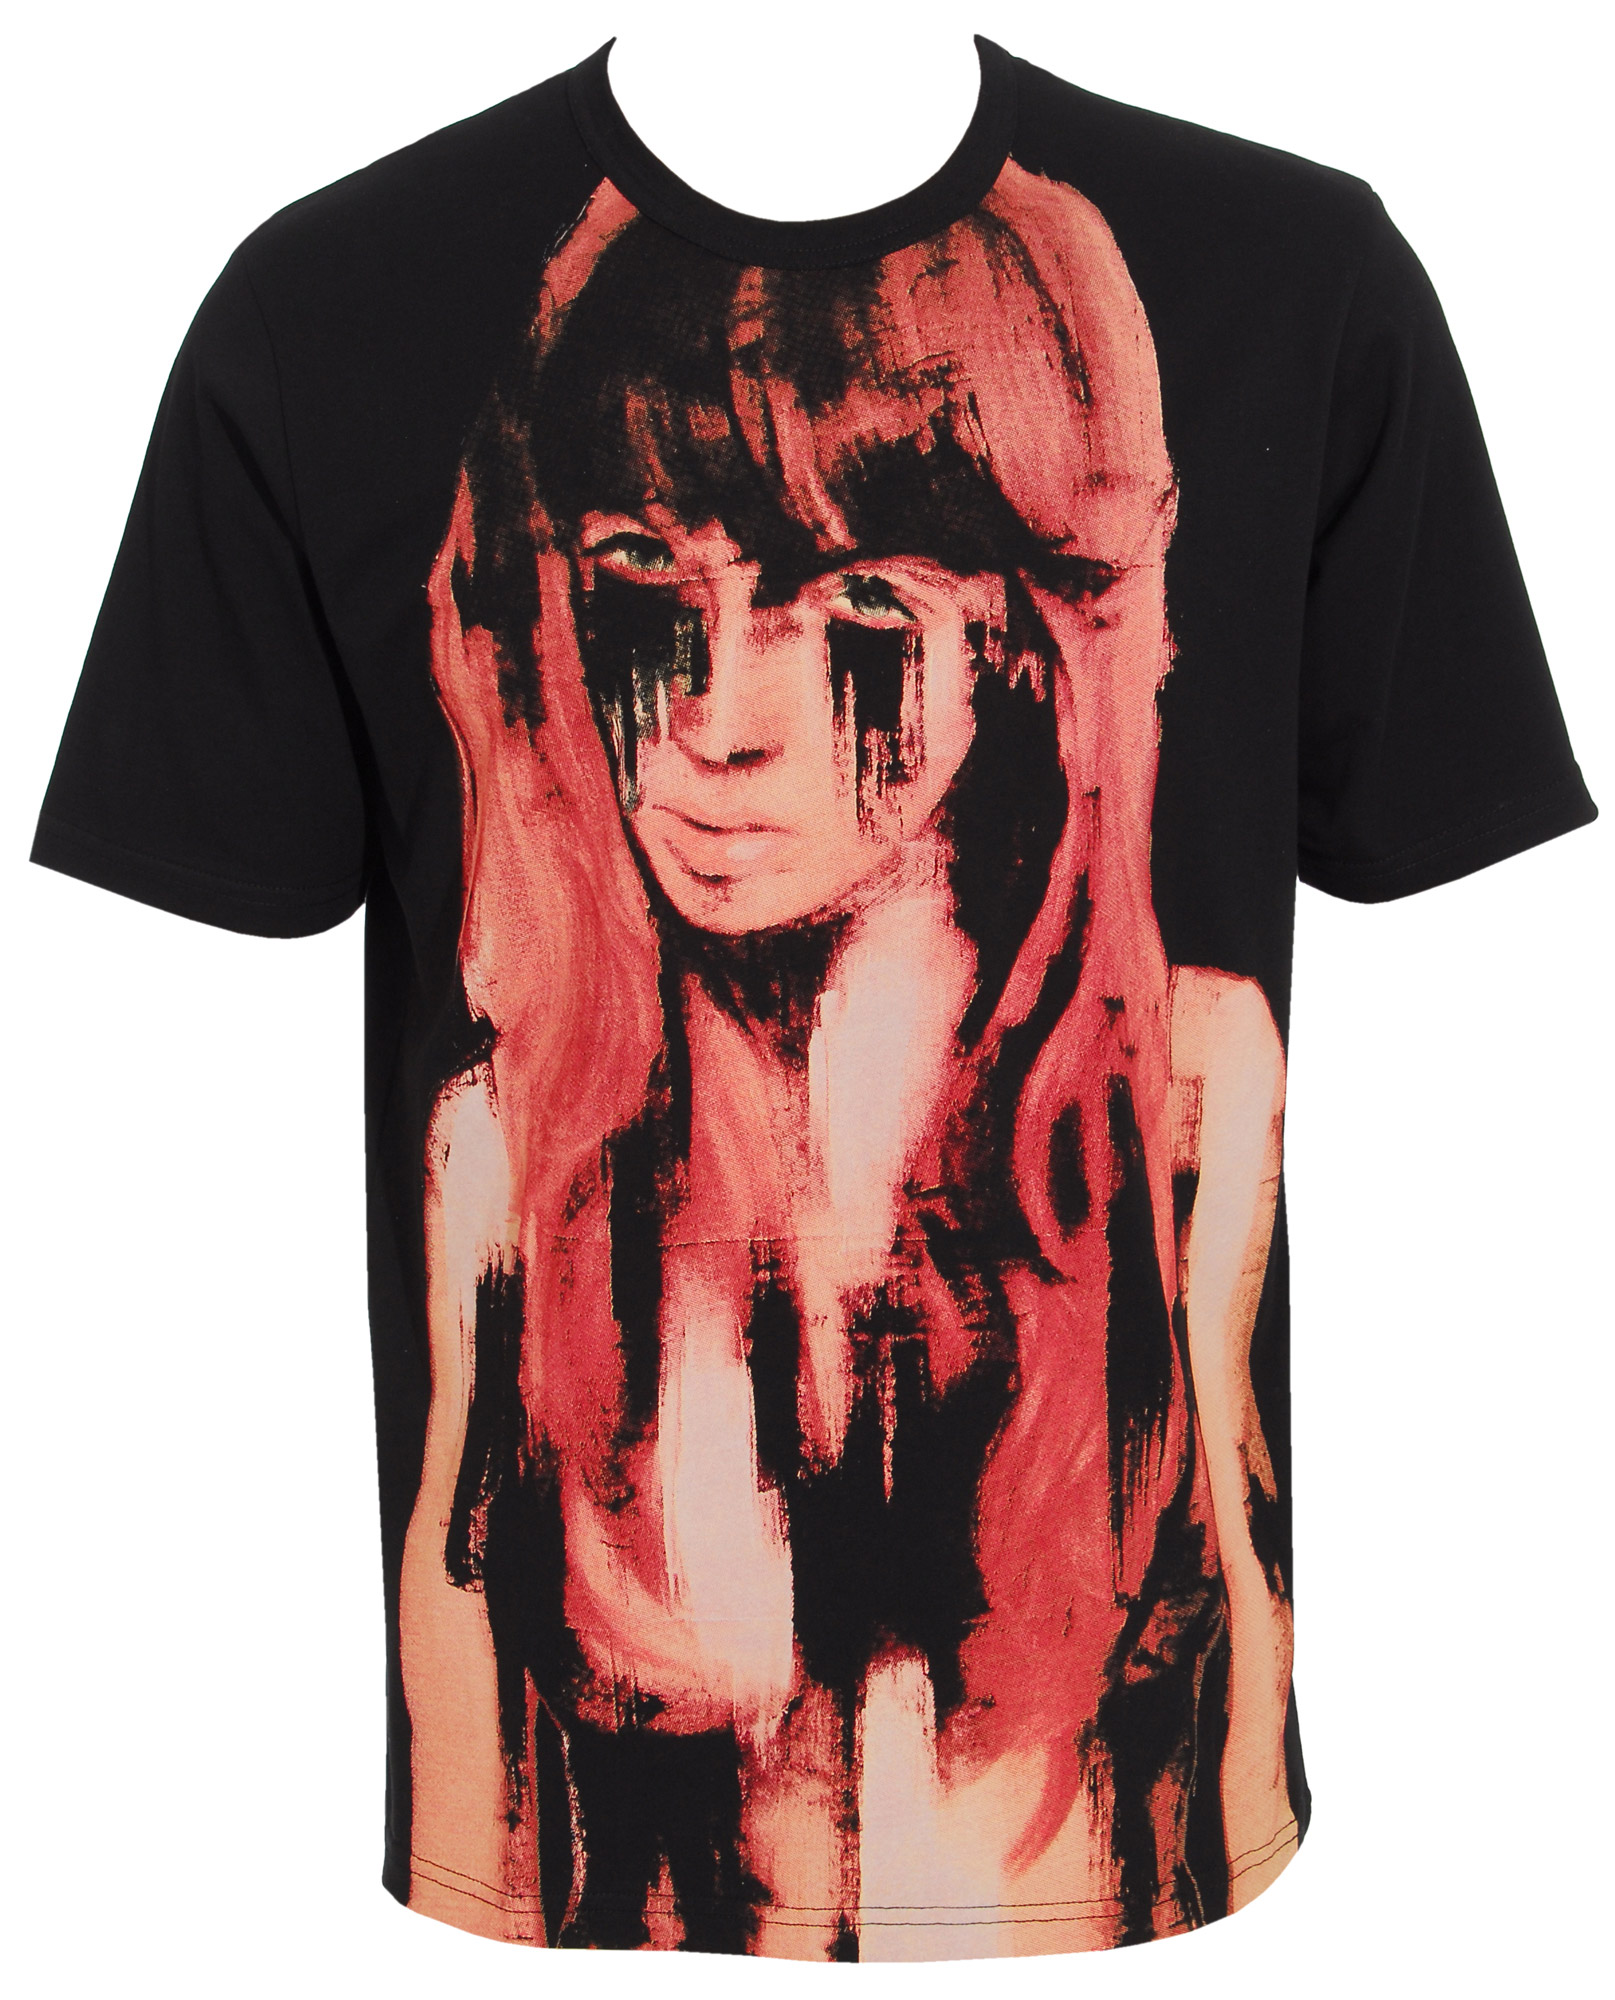 Beatrice Boyle Redhead T-shirt in Black for Men